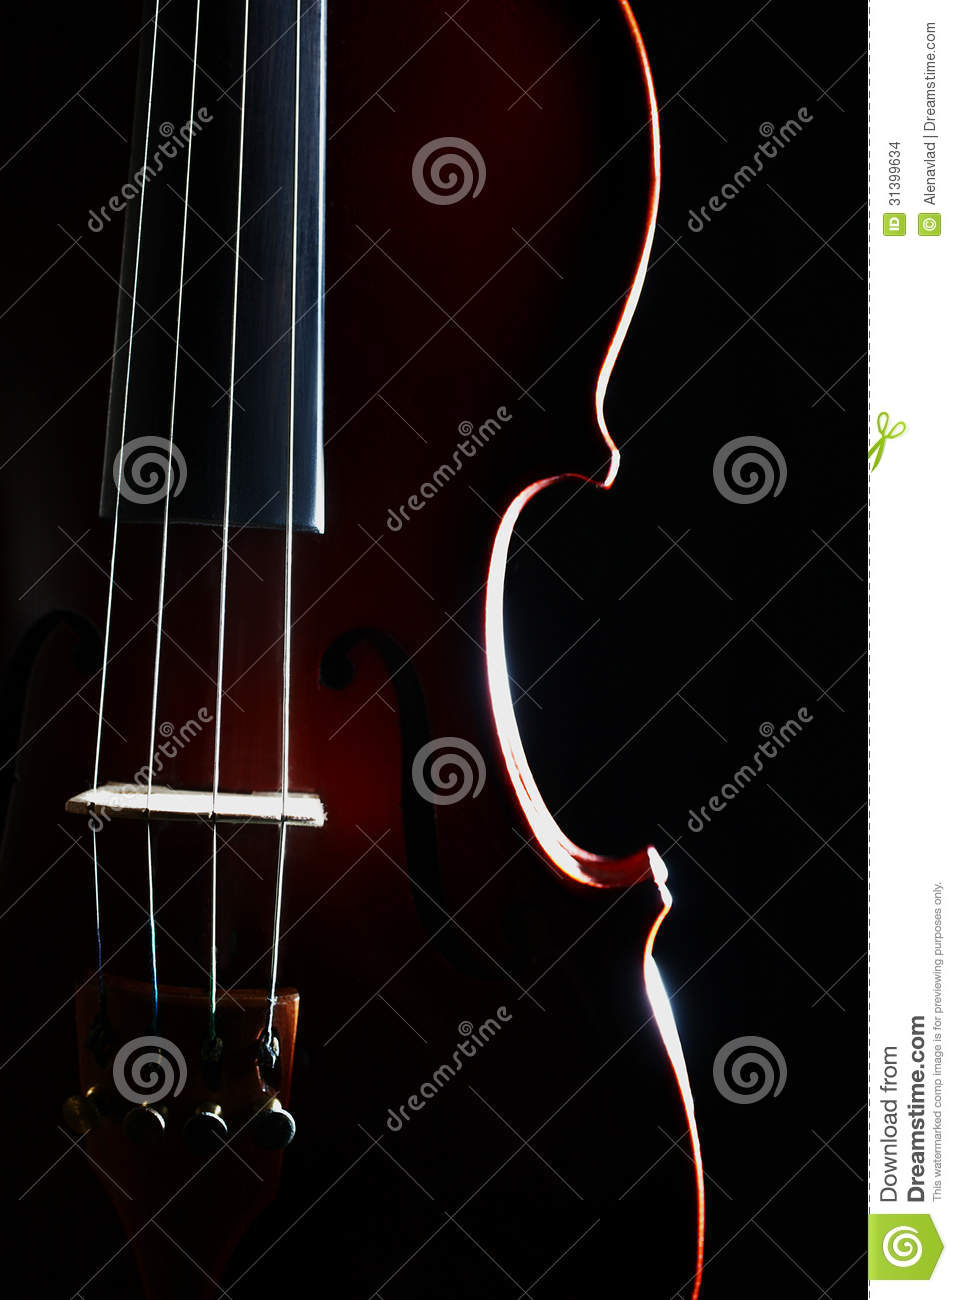 Violin Strings  Orchestral Musical Instrument Closeup Isolated On